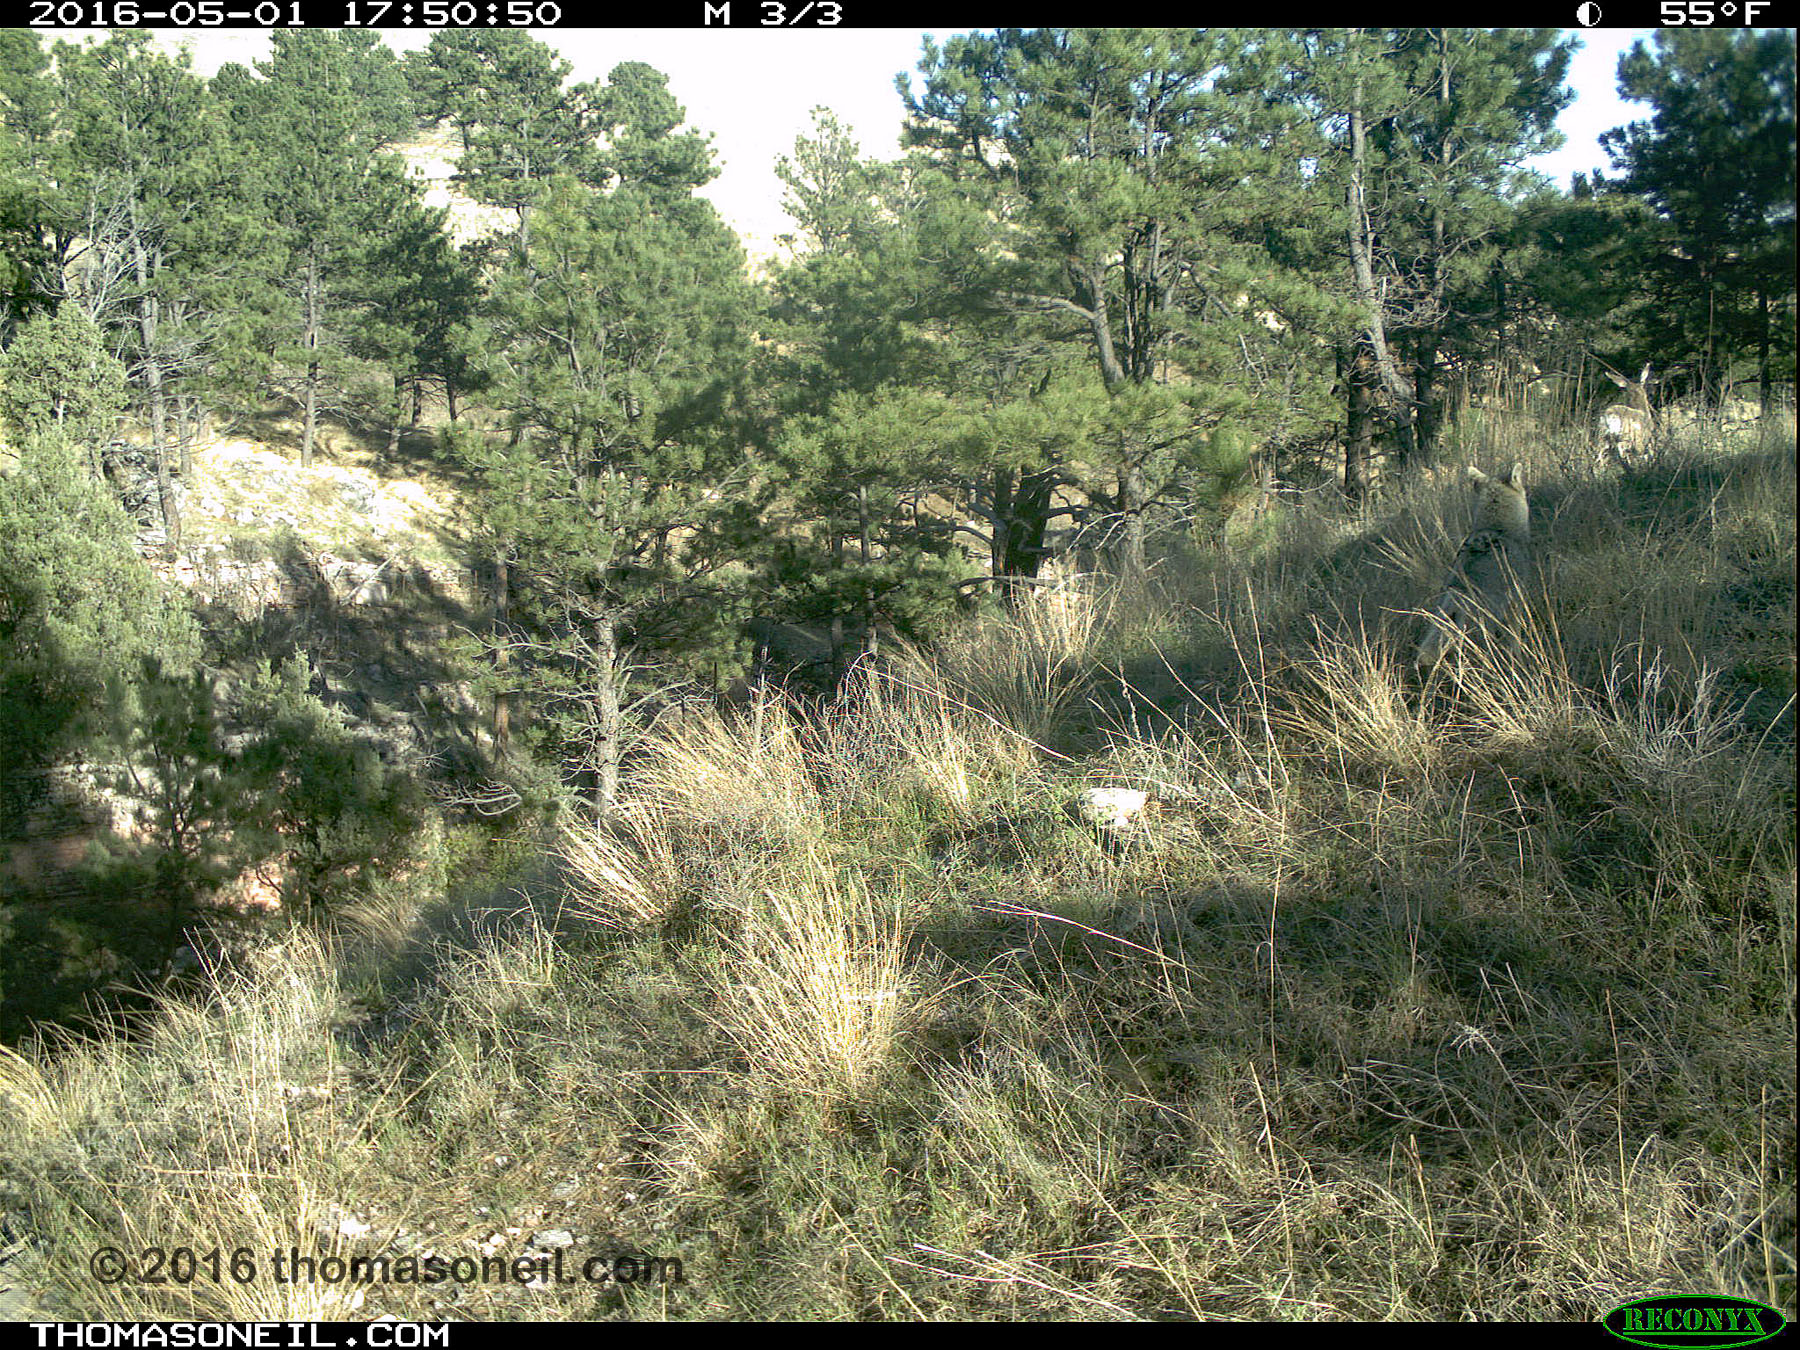 Trailcam image from Wind Cave National Park in May 2016, you need to look closely at upper right to see a coyote starting to chase a deer.